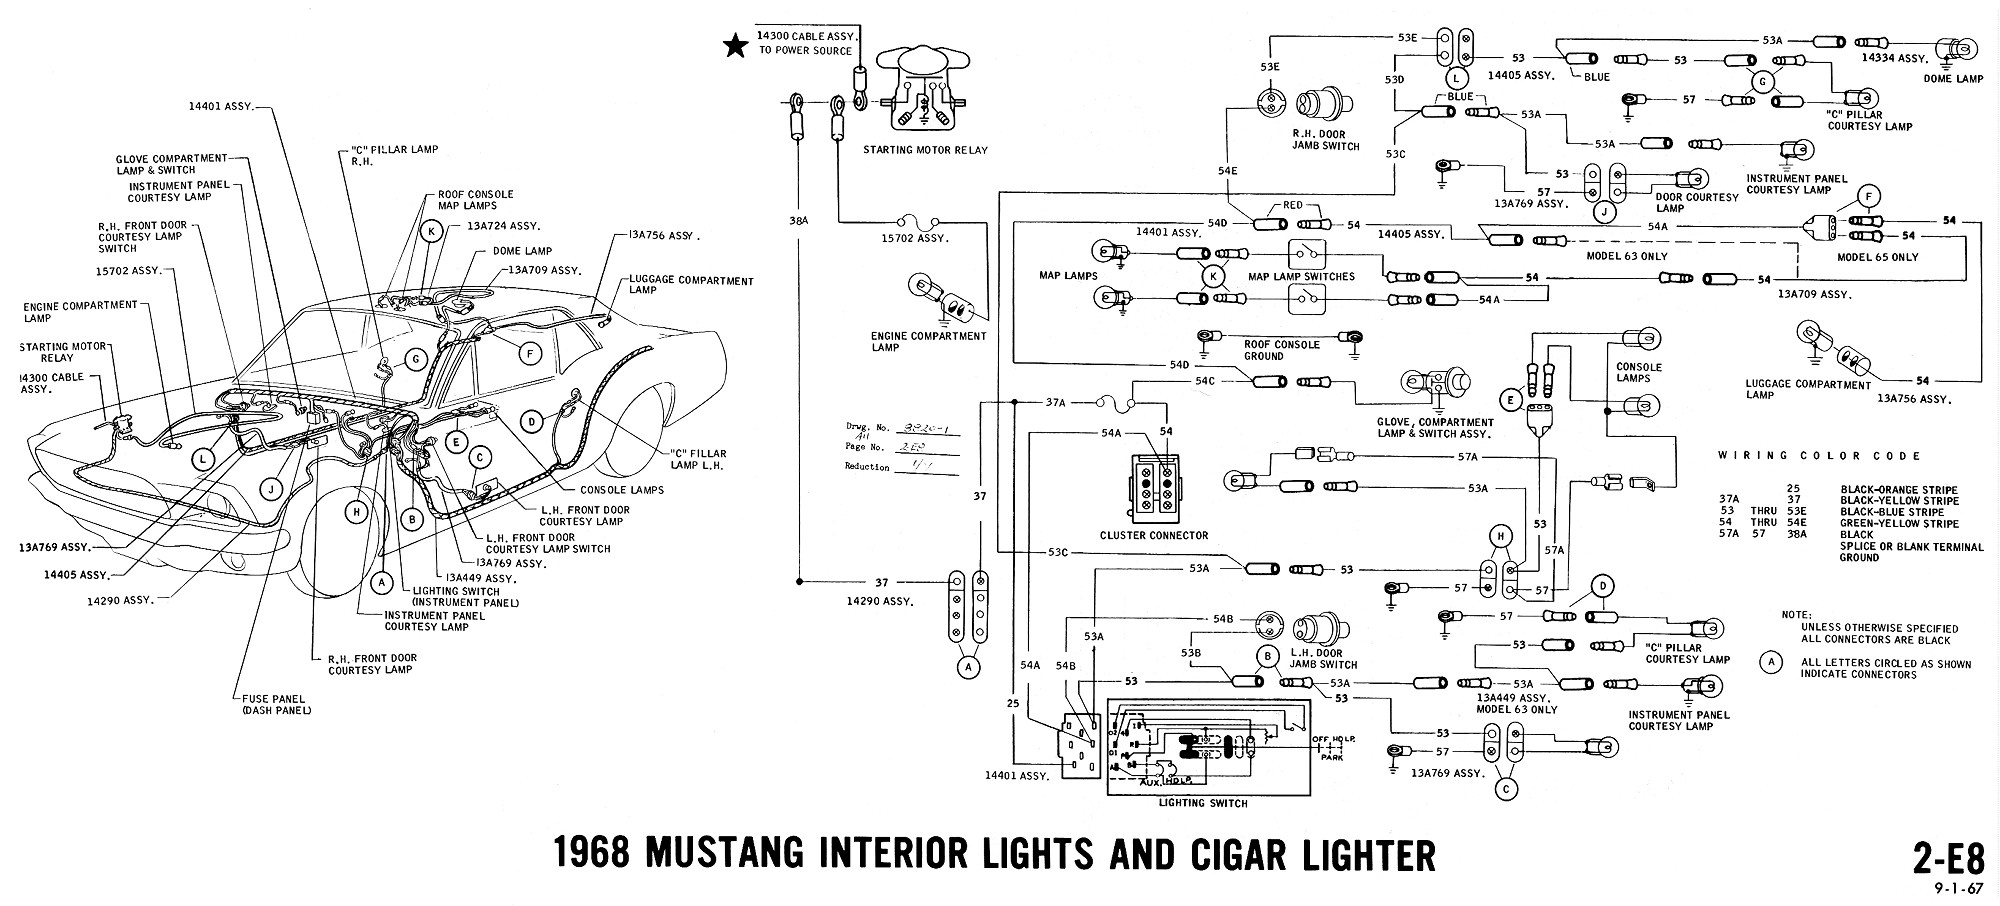 1968 Corvette Starter Wiring Diagram Data Diagrams For Mustang And Vacuum Schematics Fusible Link 1984 C4